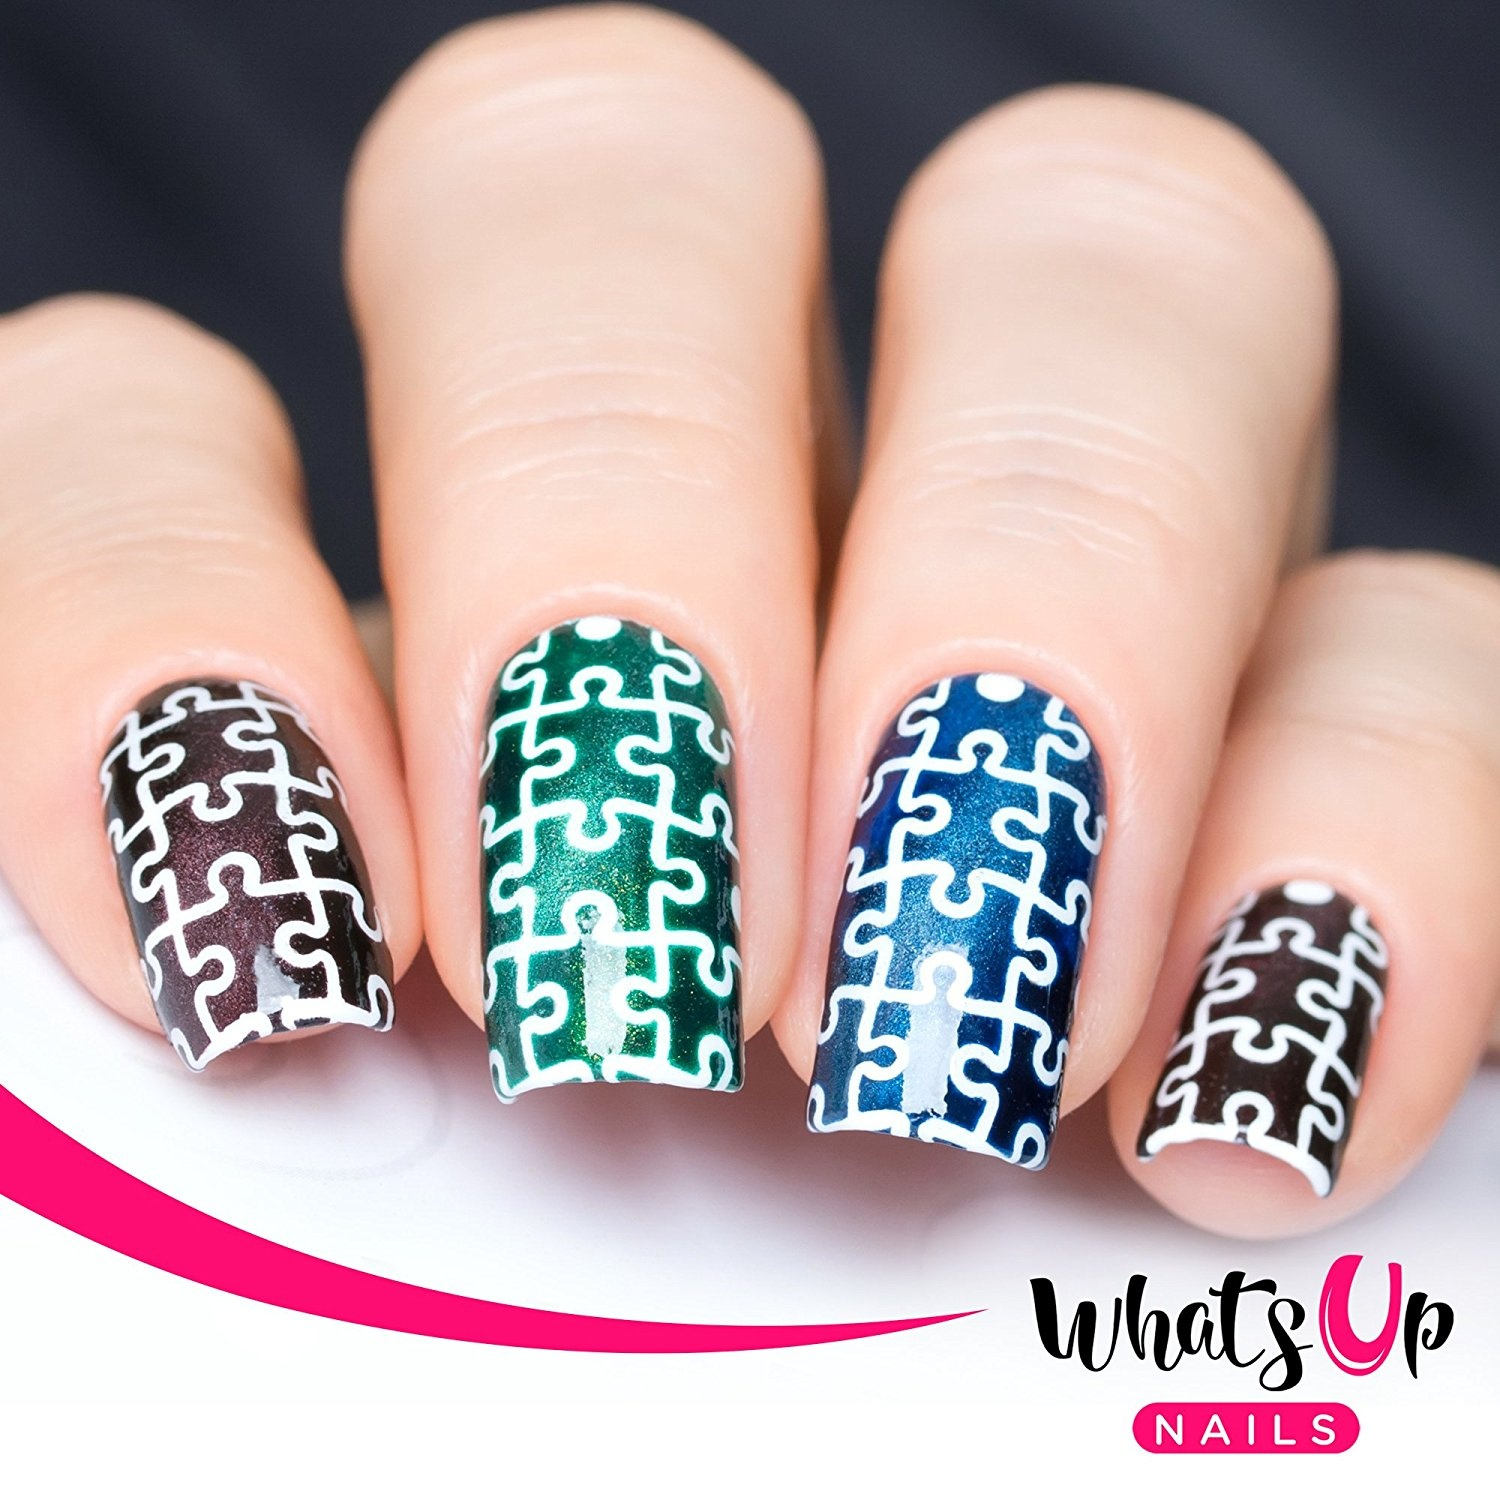 Whats Up Nails   Puzzles Nail Stencils Stickers Vinyls for Nail ...